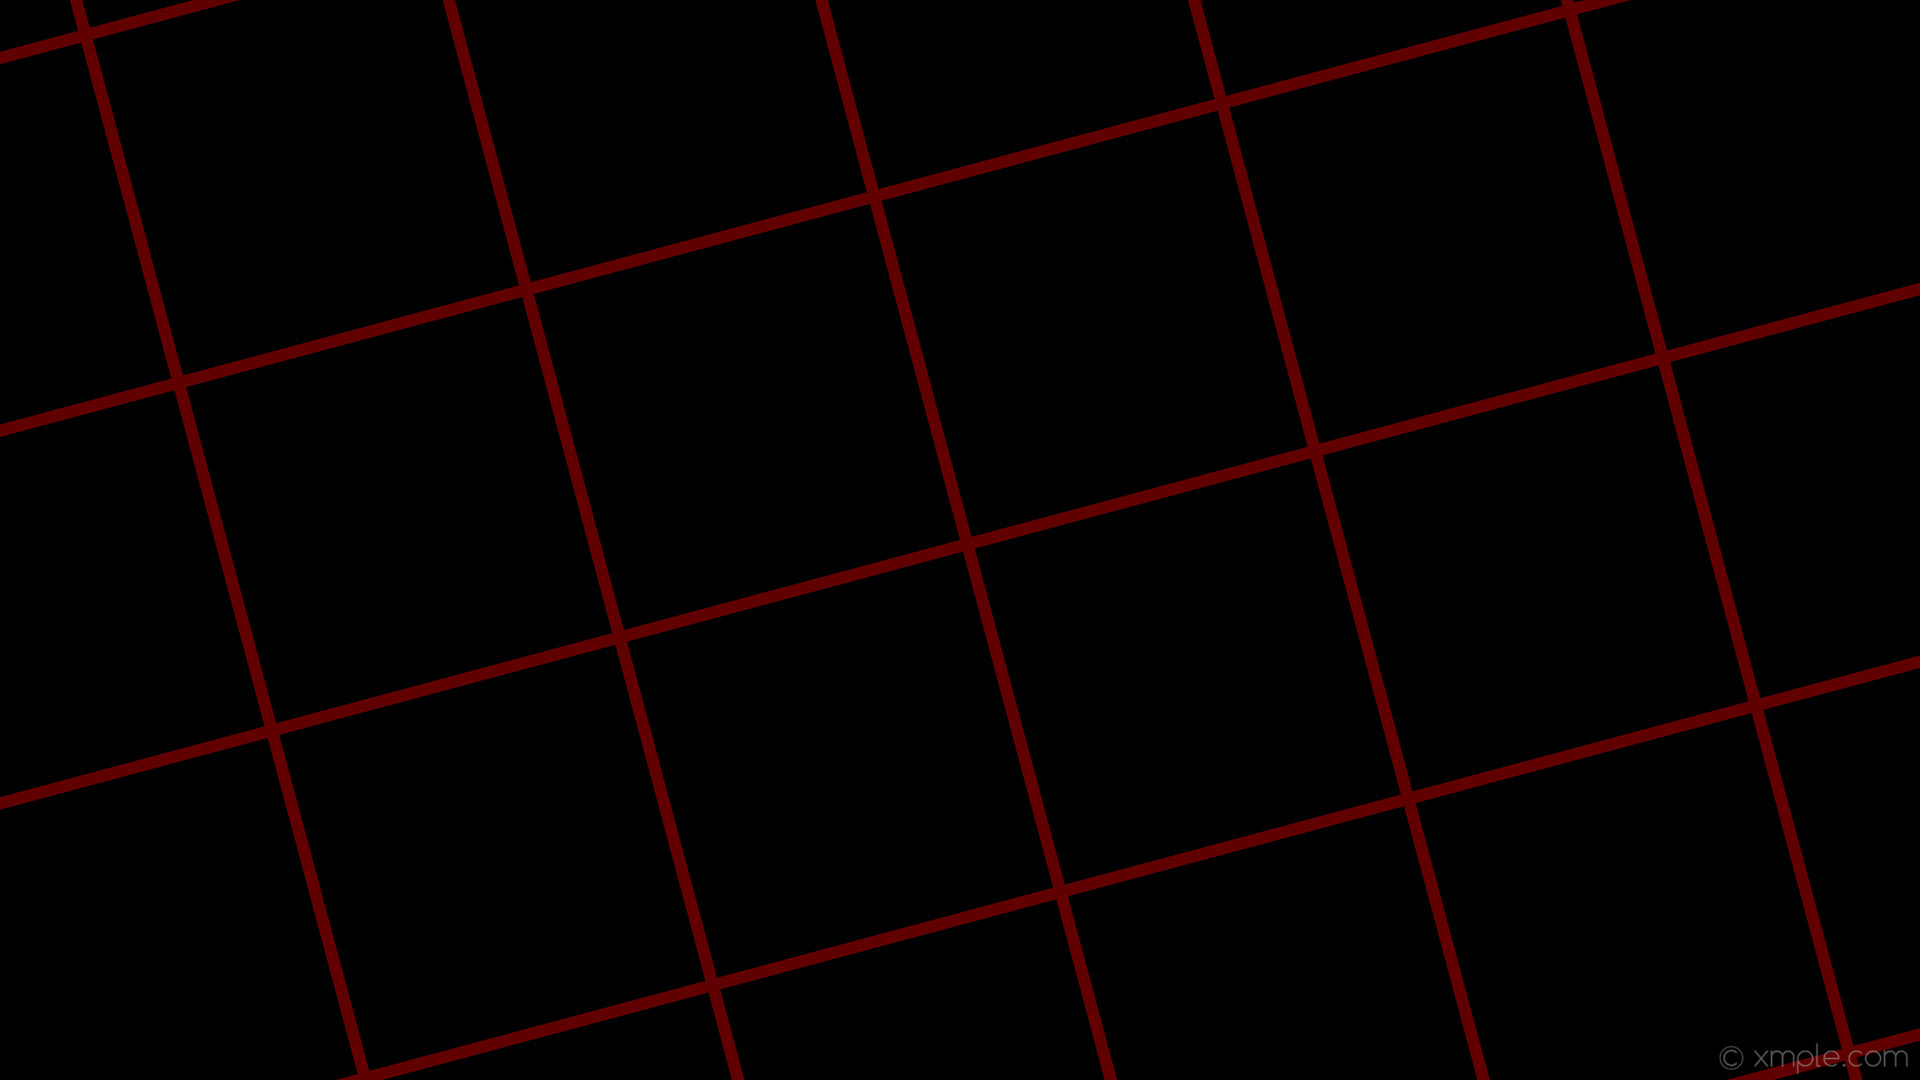 wallpaper graph paper red black grid dark red #000000 #8b0000 15° 12px 360px